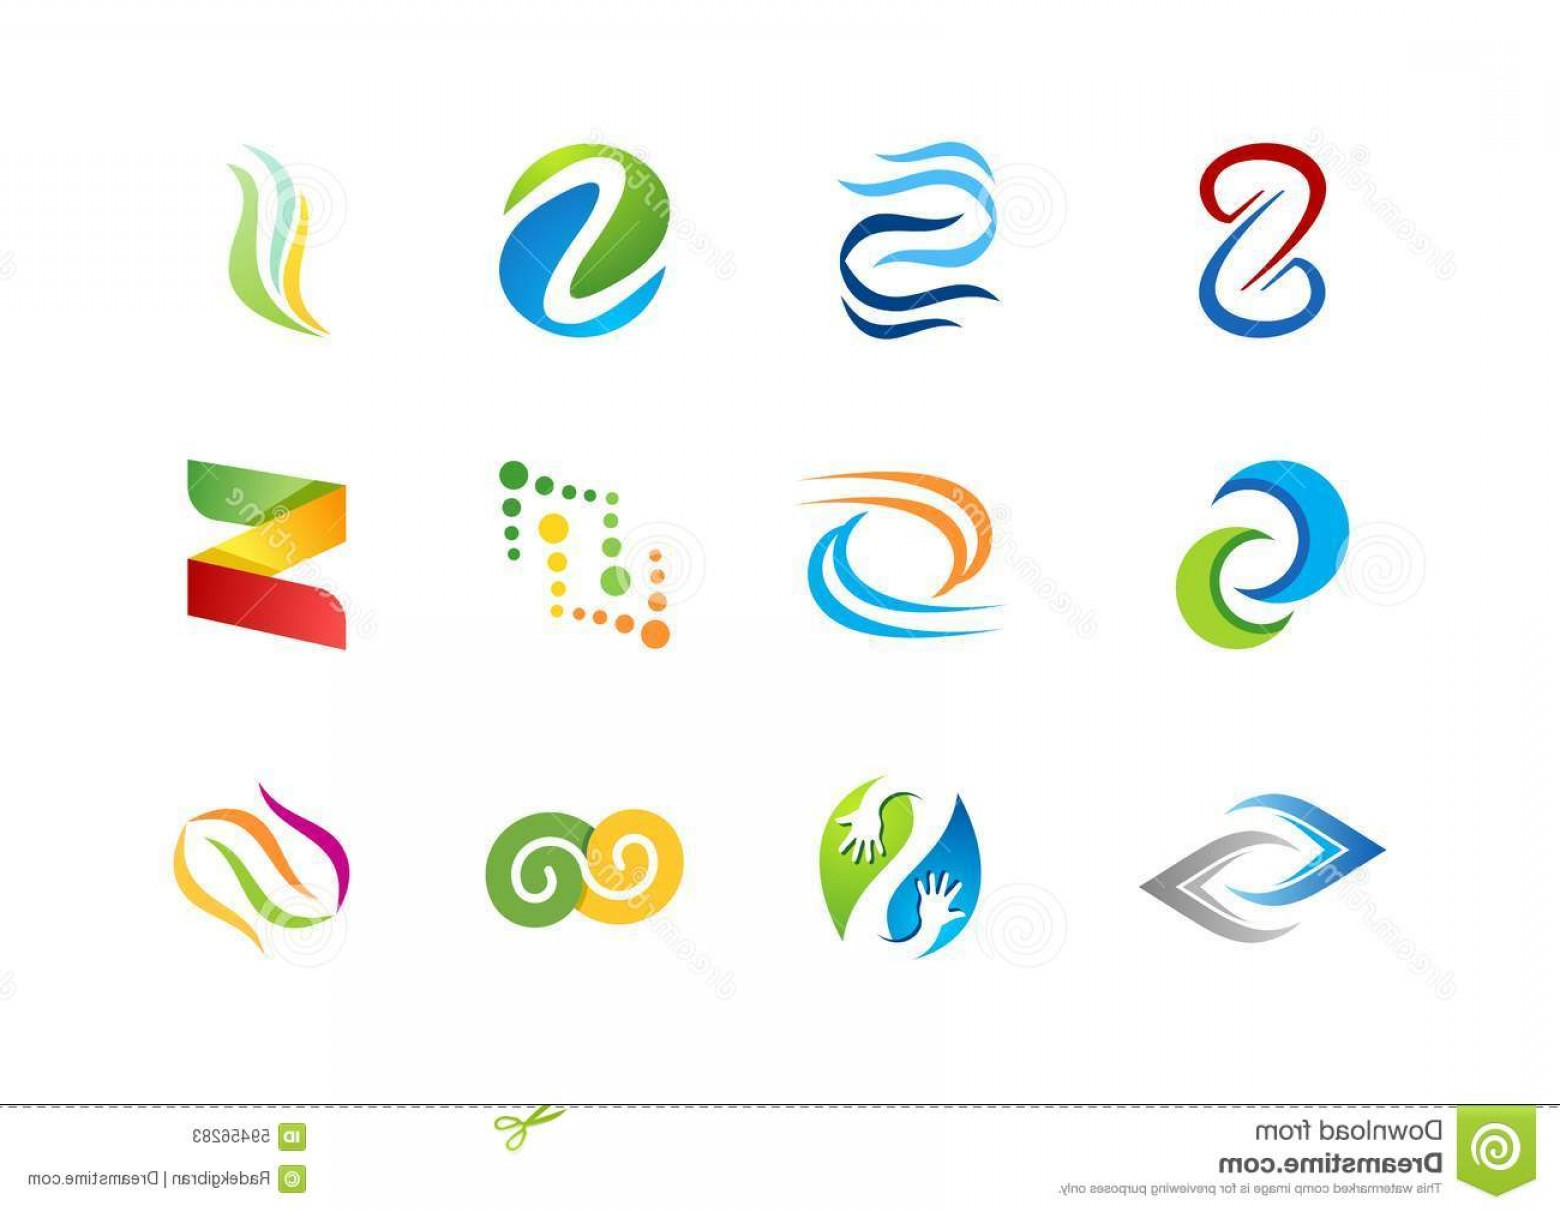 Business Vector Logos: Stock Illustration Letter S Logo Abstract Element Concept Company Logos Business Logo Symbol Icon Vector Design Elements Image